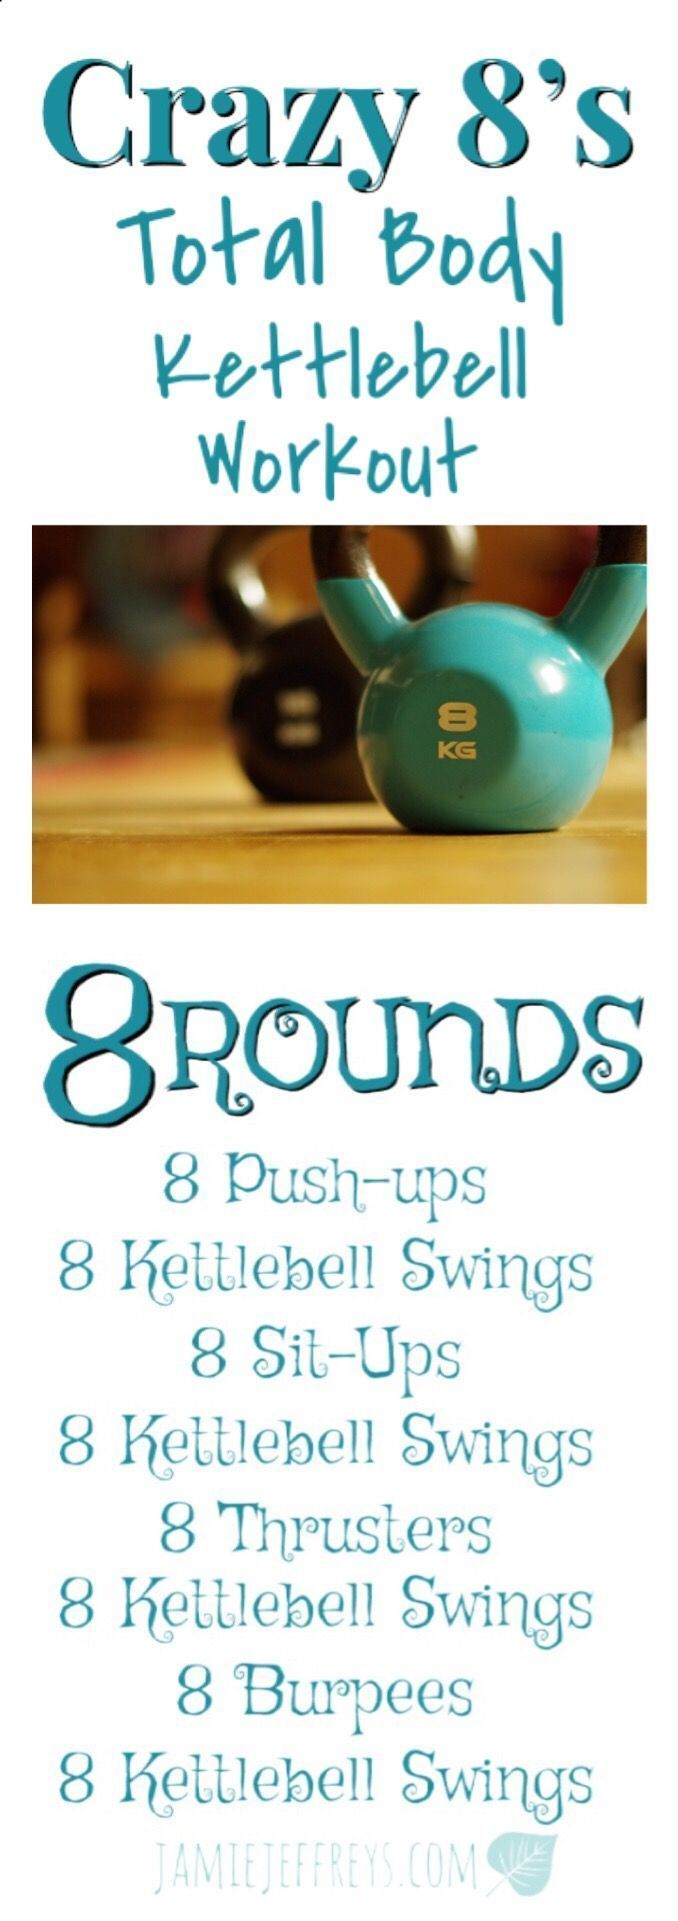 Total Body Workout: Crazy 8's Kettlebell Workout includes kettlebell swings, pus…